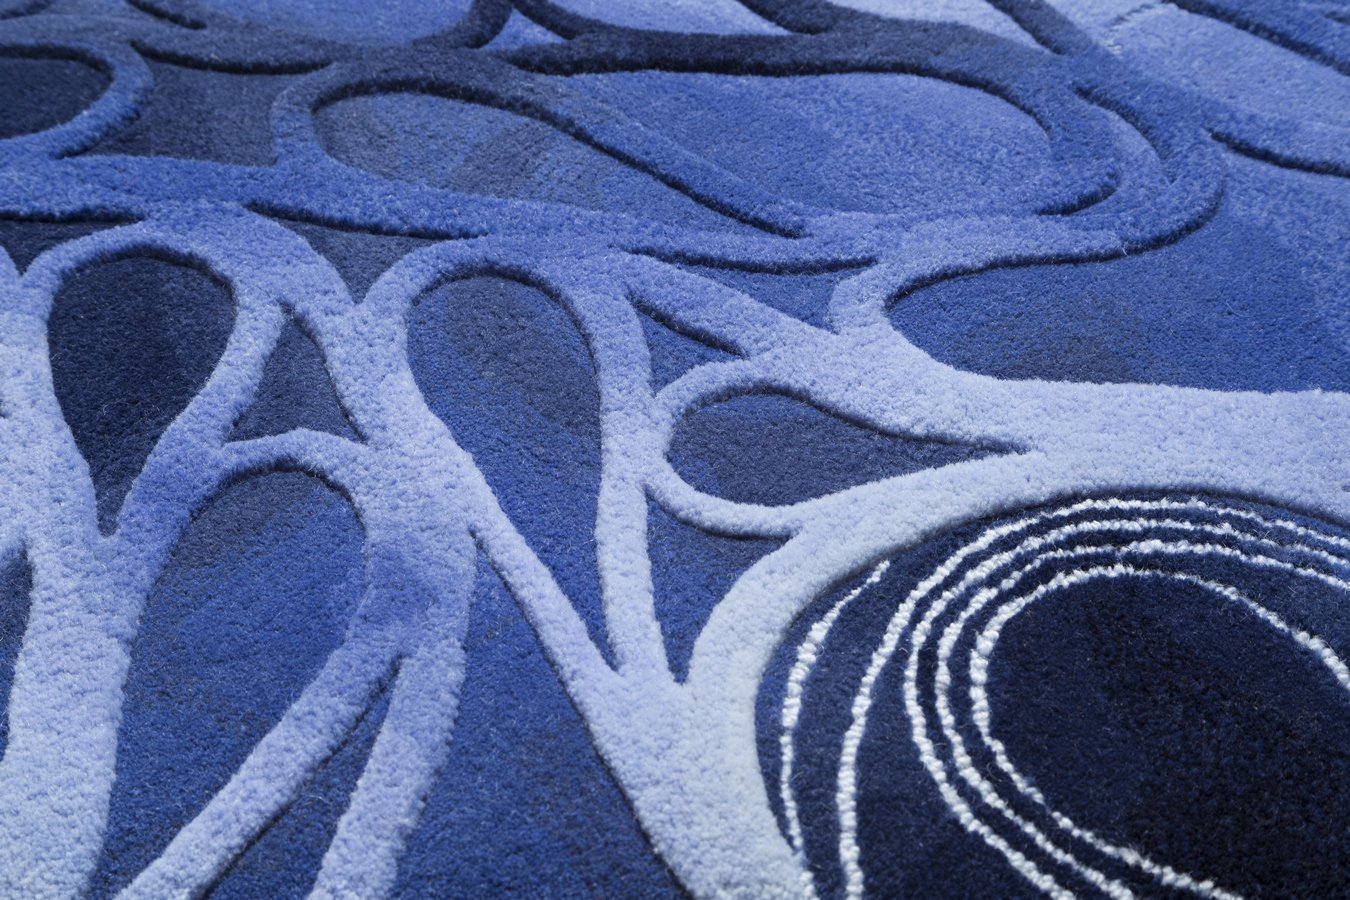 architecture-in-the-carpet-design-08